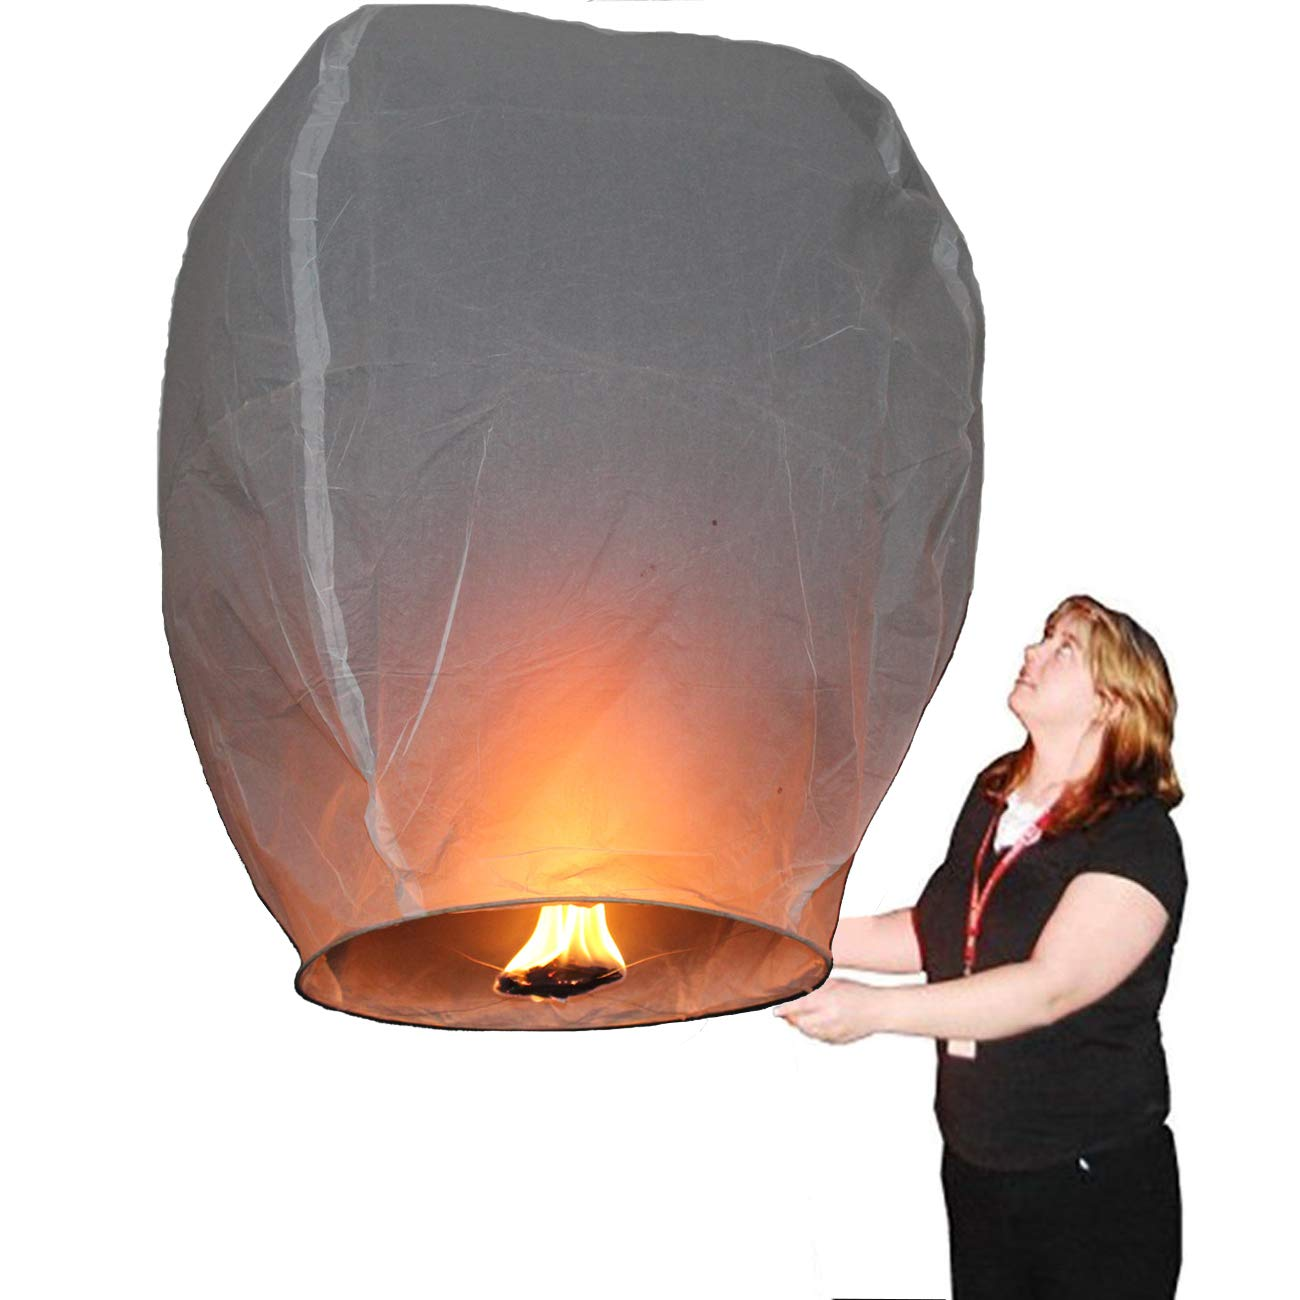 Nuluphu Sky Lanterns 10-Pack, Fully Assembled and100% Biodegradable (No Iron Wire),for Any Birthdays, Parties, New Years,Funeral, Memorial Ceremonies, and More (White) by Nuluphu (Image #3)